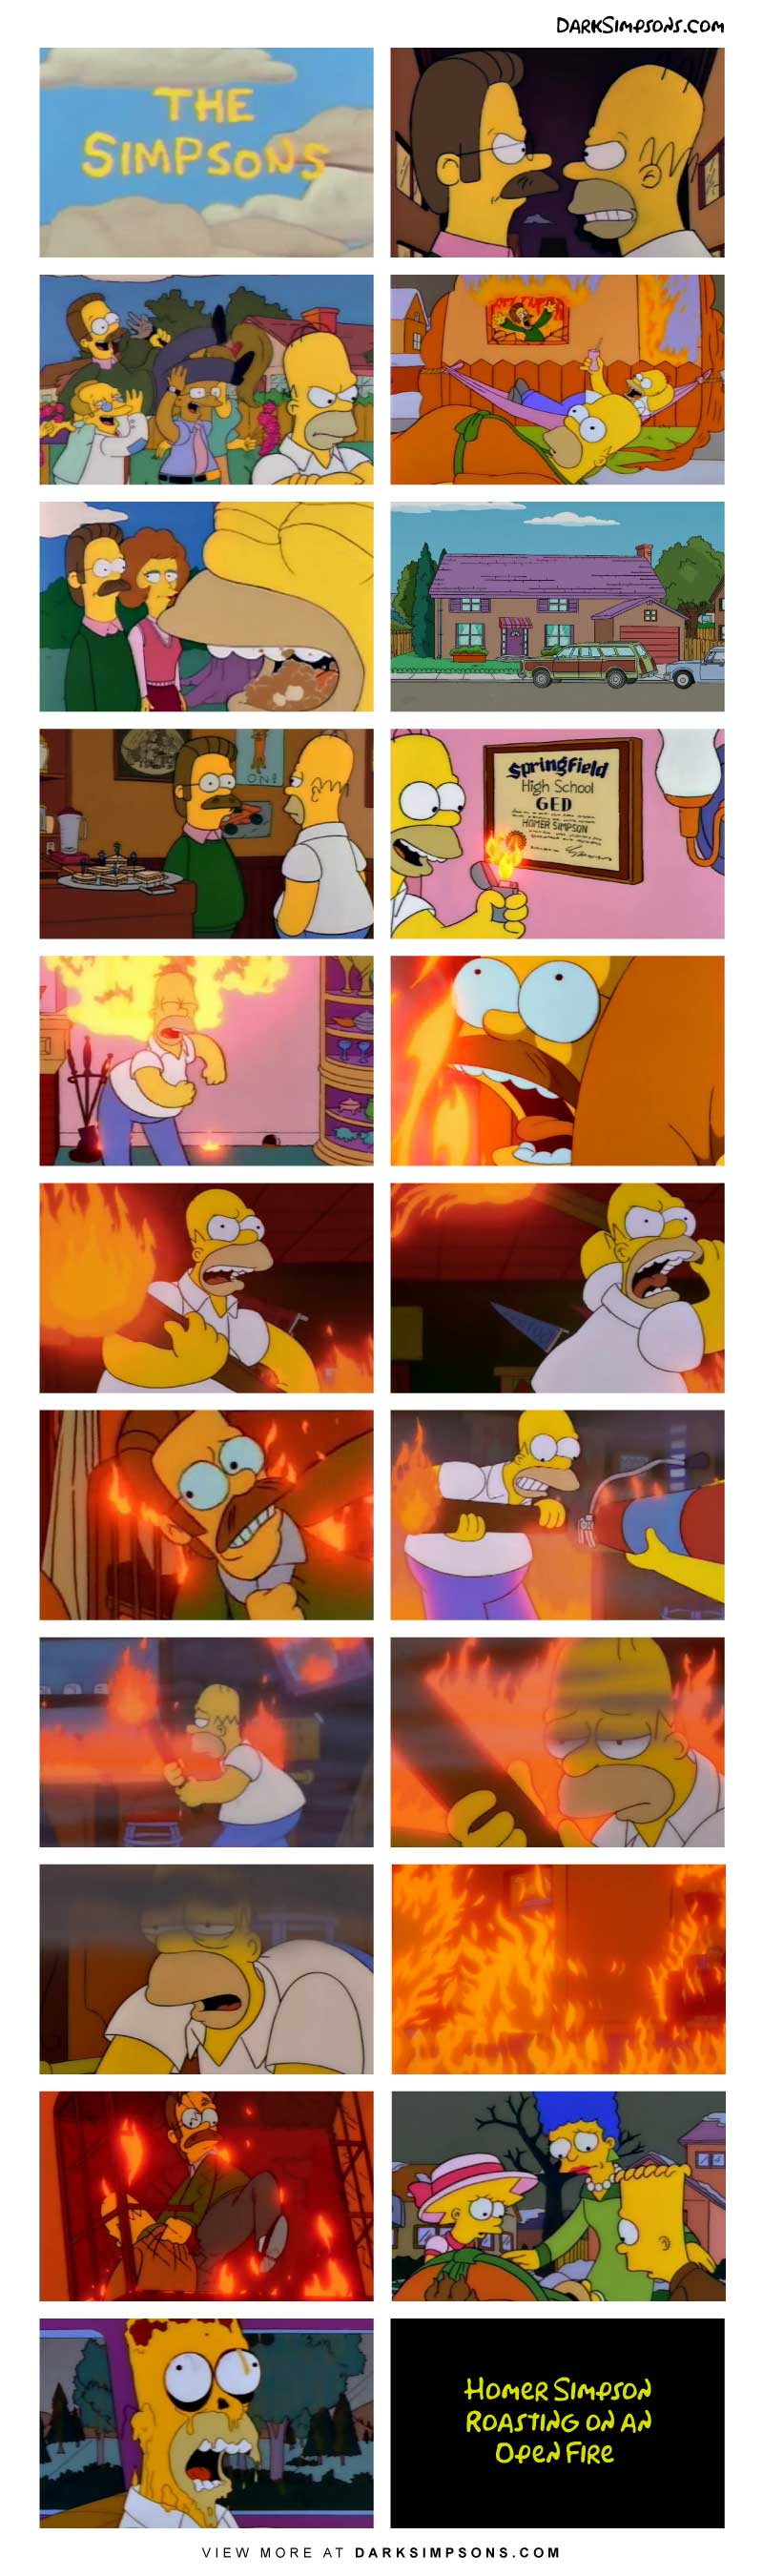 Homer is sick and tired of Ned, so he devised a brilliant plan to get rid of him.  And it all begins with lighting the Flanders house on fire.